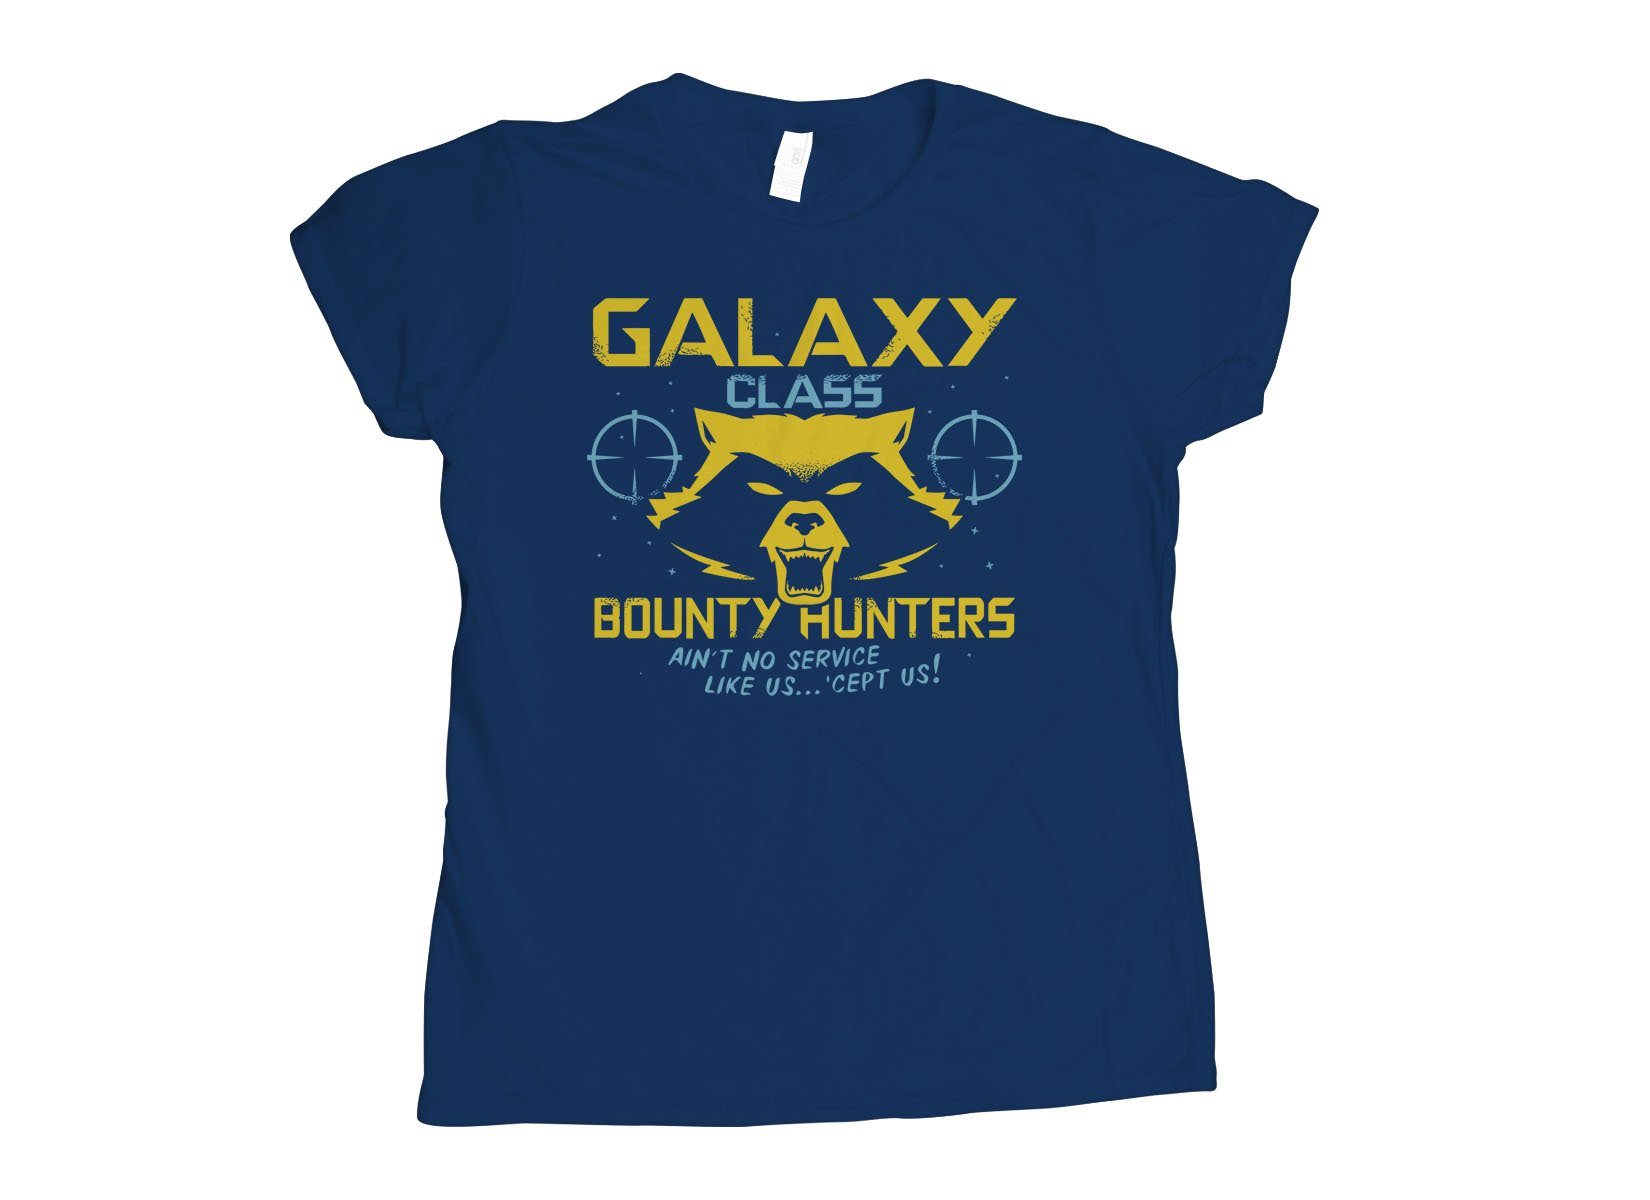 Galaxy Class Bounty Hunters on Womens T-Shirt